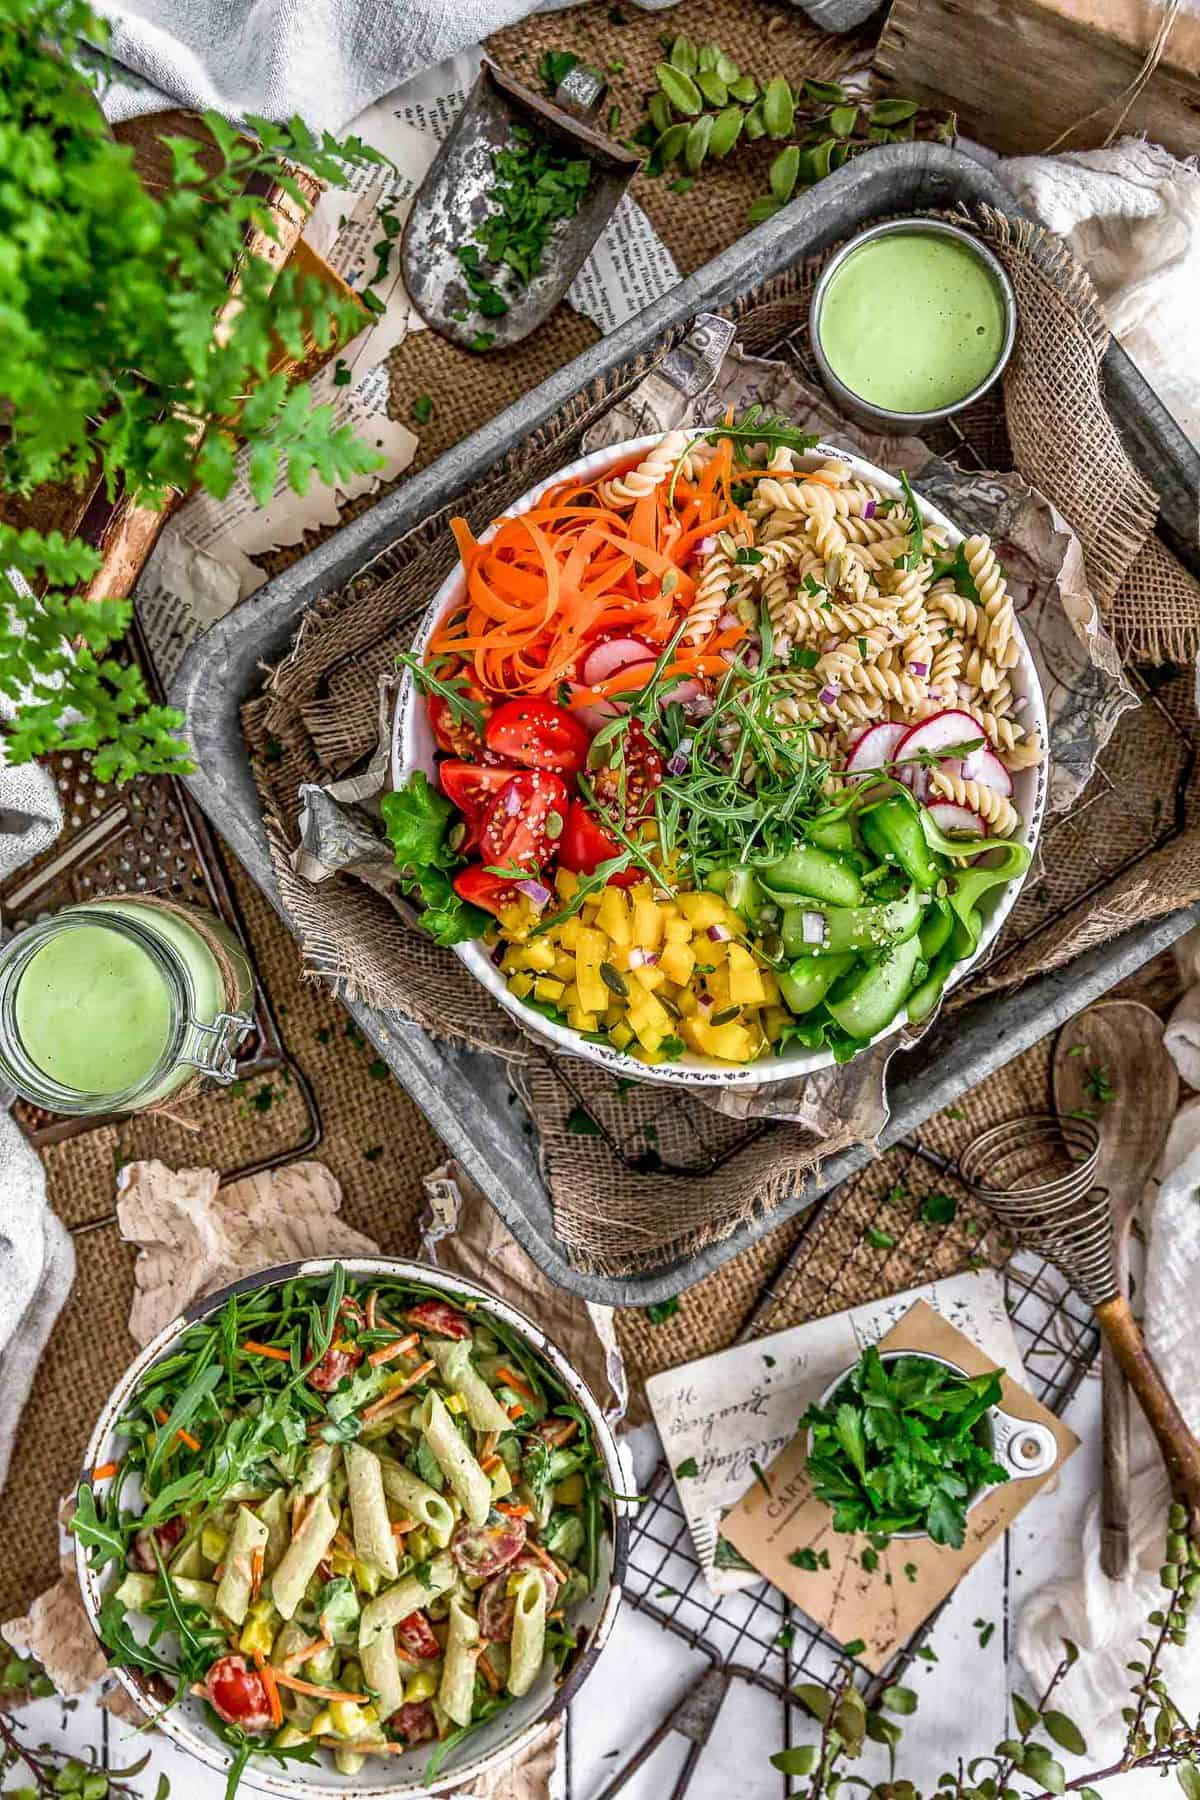 Tablescape of Vegan Green Goddess Dressing and salad